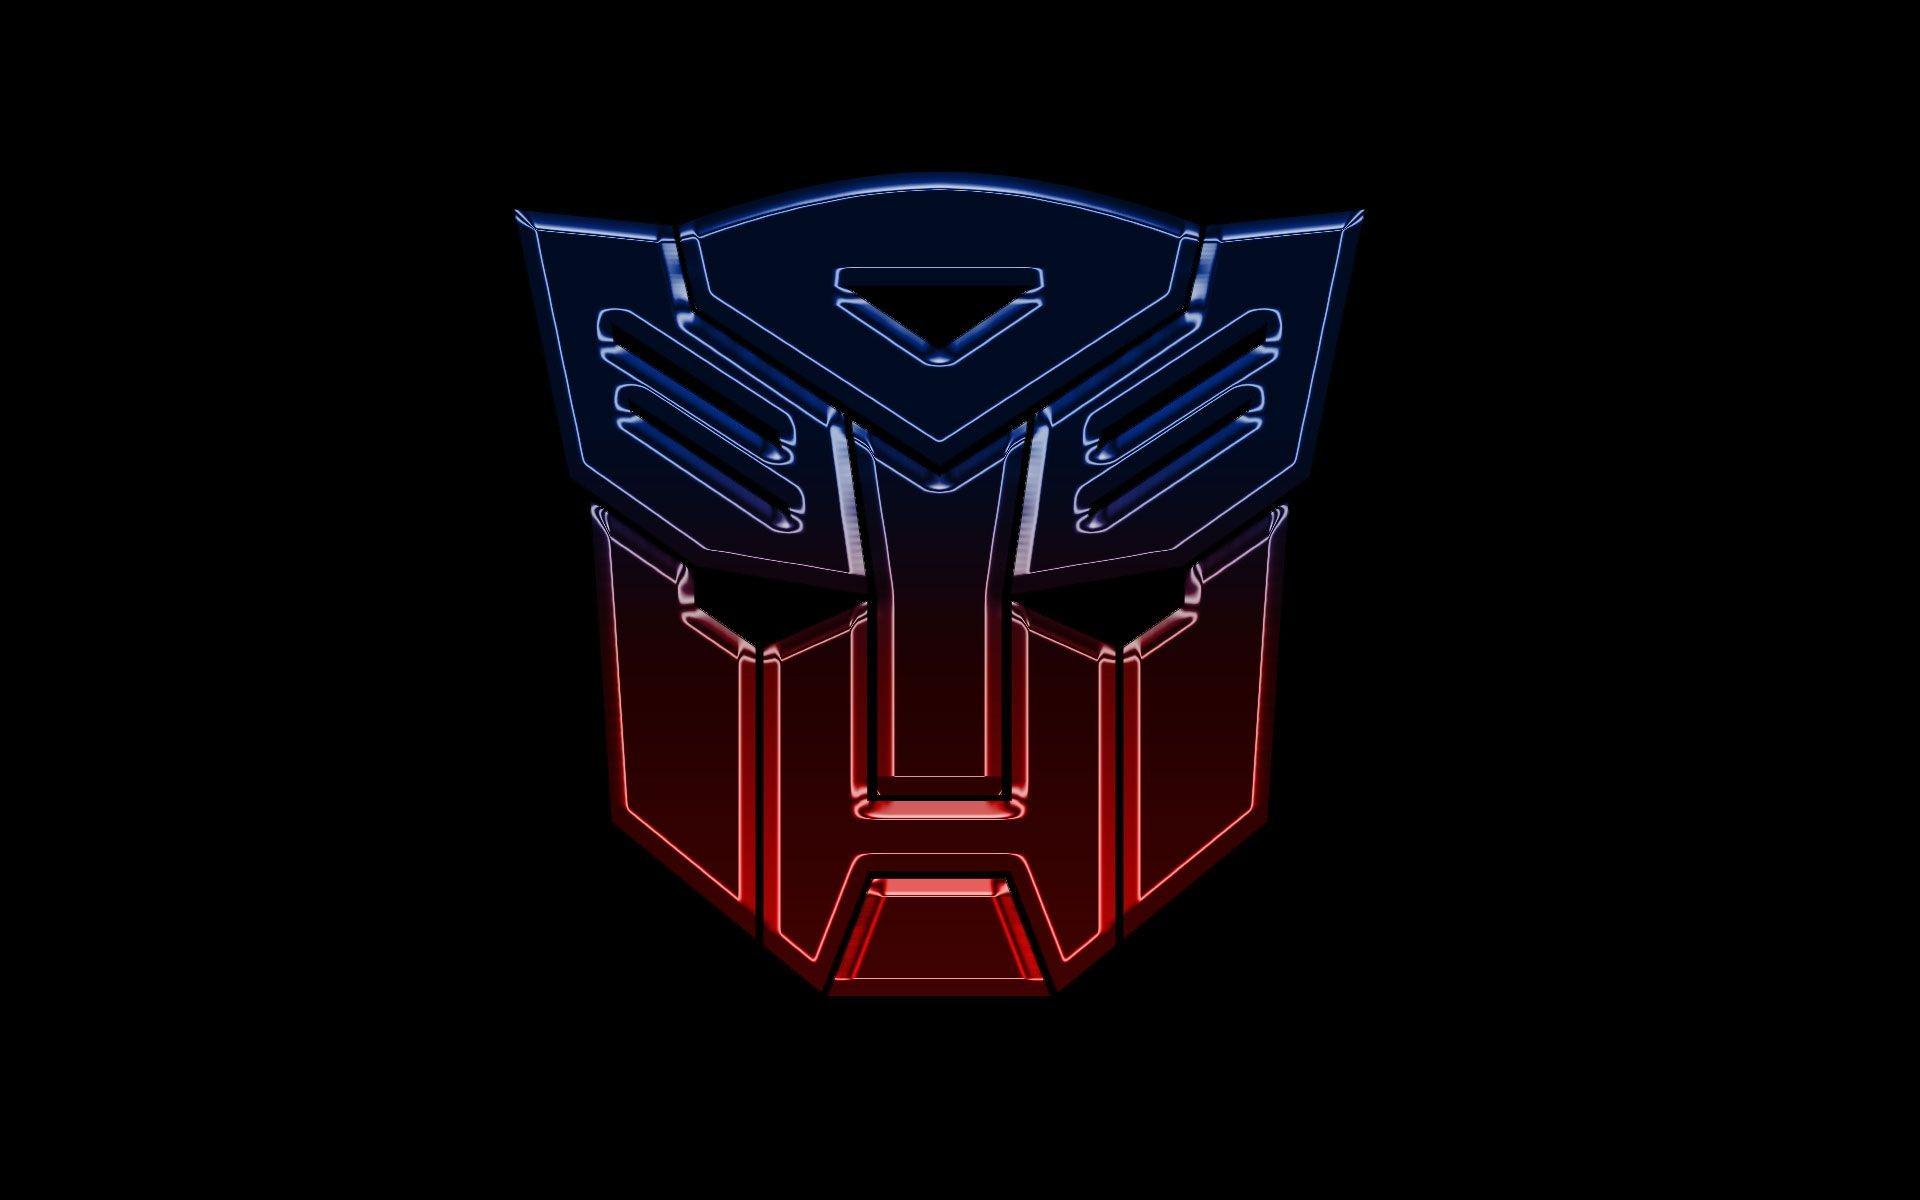 Res: 1920x1200, HD Wallpaper of Transformers Autobots Logo Widescreen Wallpaper, Desktop Wallpaper  Transformers Autobots Logo Widescreen Wallpaper